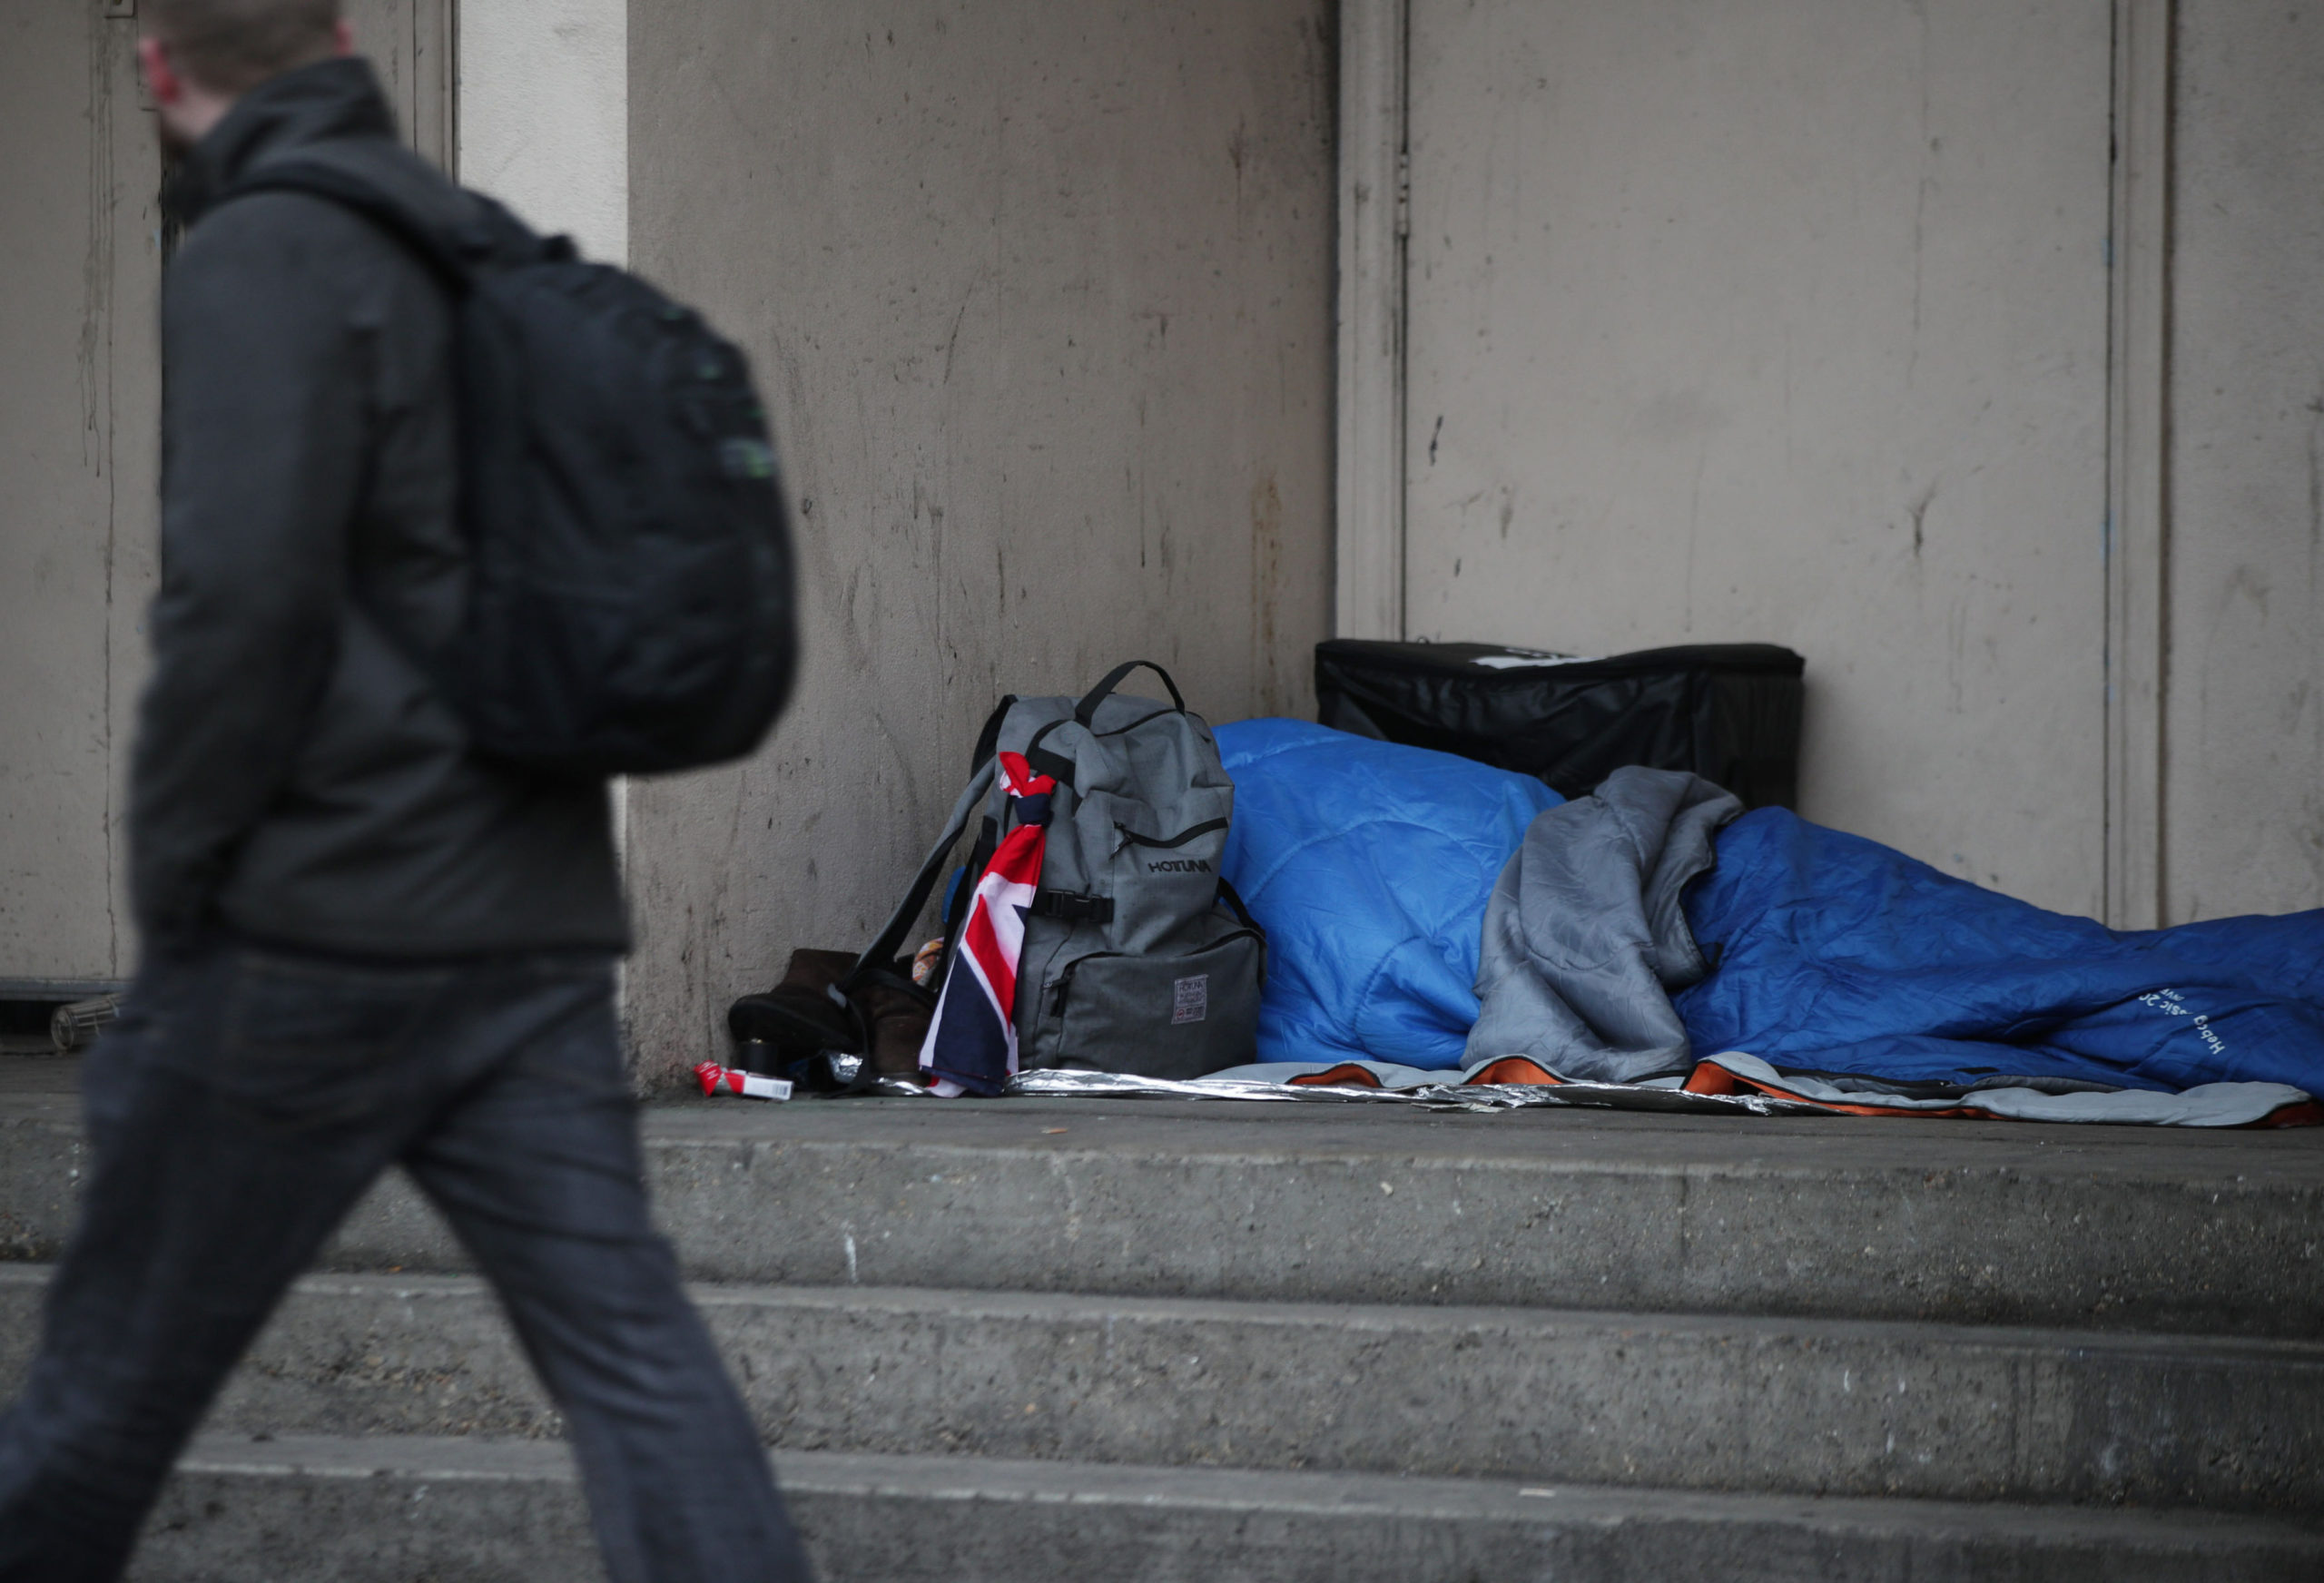 The National Records of Scotland estimates almost 200 people died while homeless in Scotland in 2018.